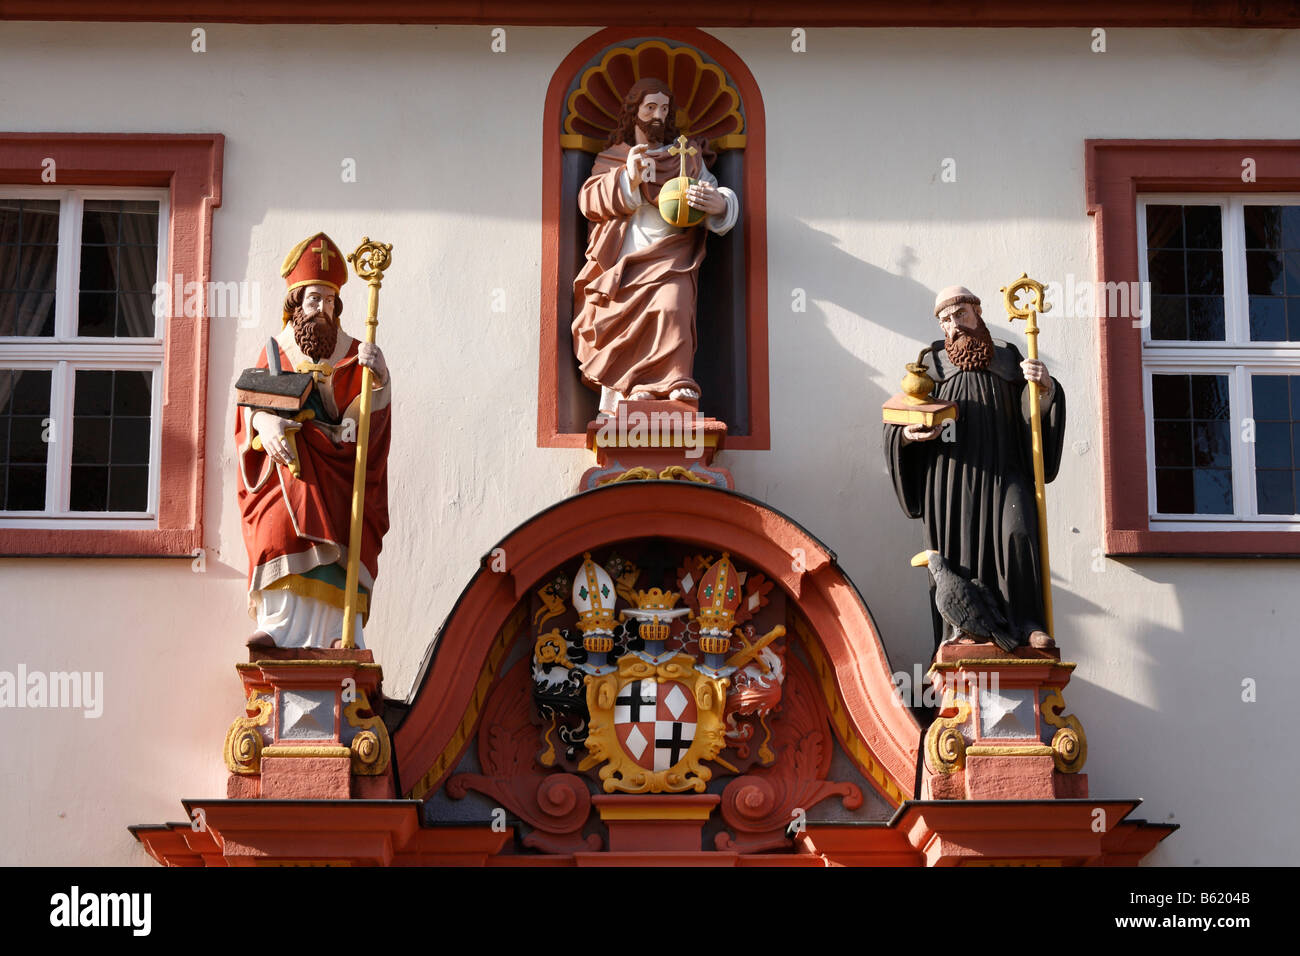 Episcopal seminary, convent building, Fulda, Rhoen, Hesse, Germany, Europe - Stock Image